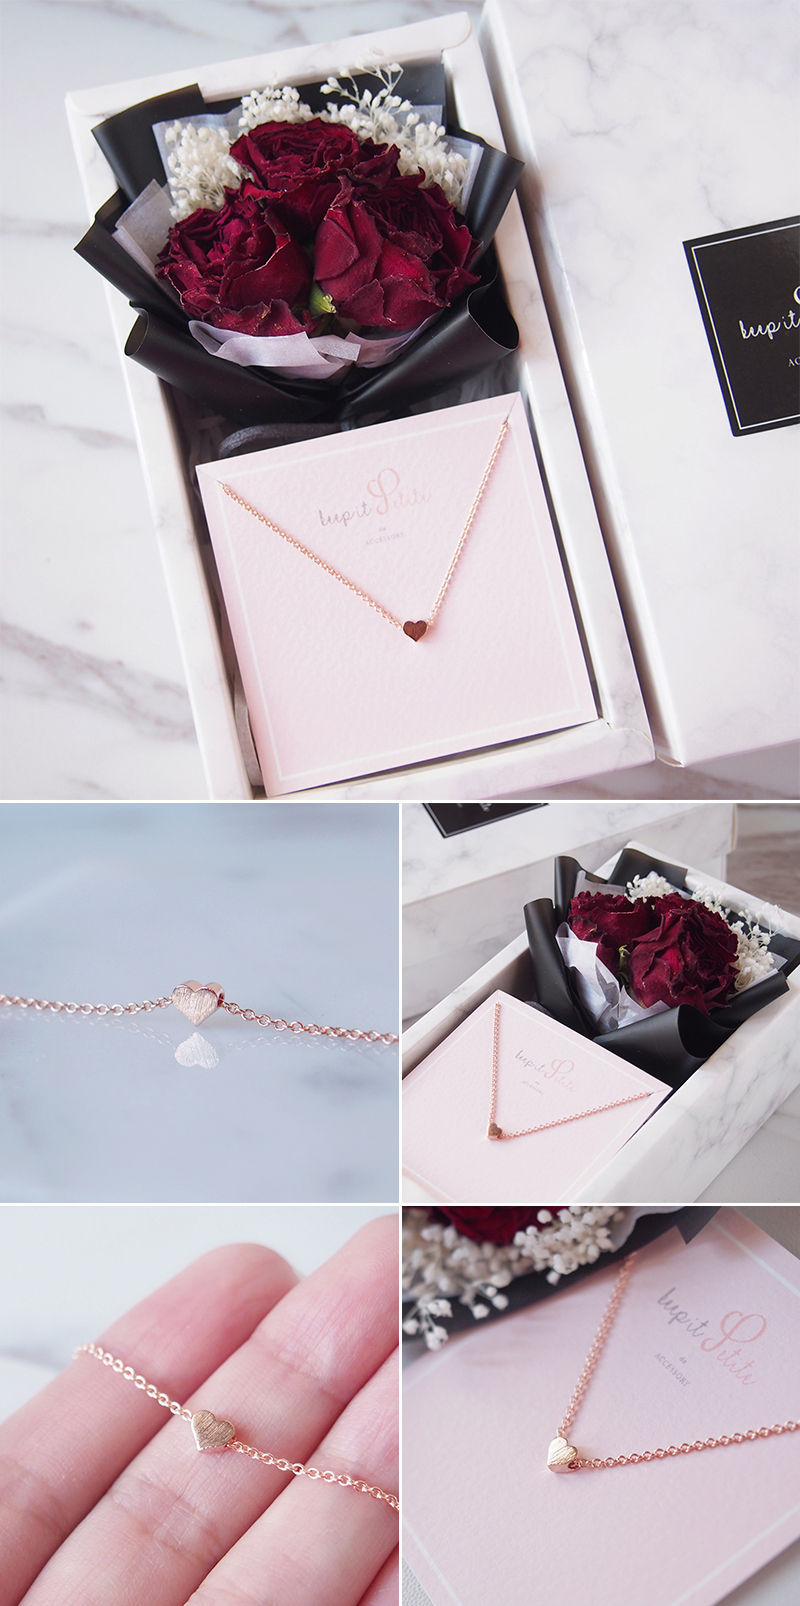 Mini Brushed Heart Rose Gold Necklace with Keepsake Bouquet Gift Set